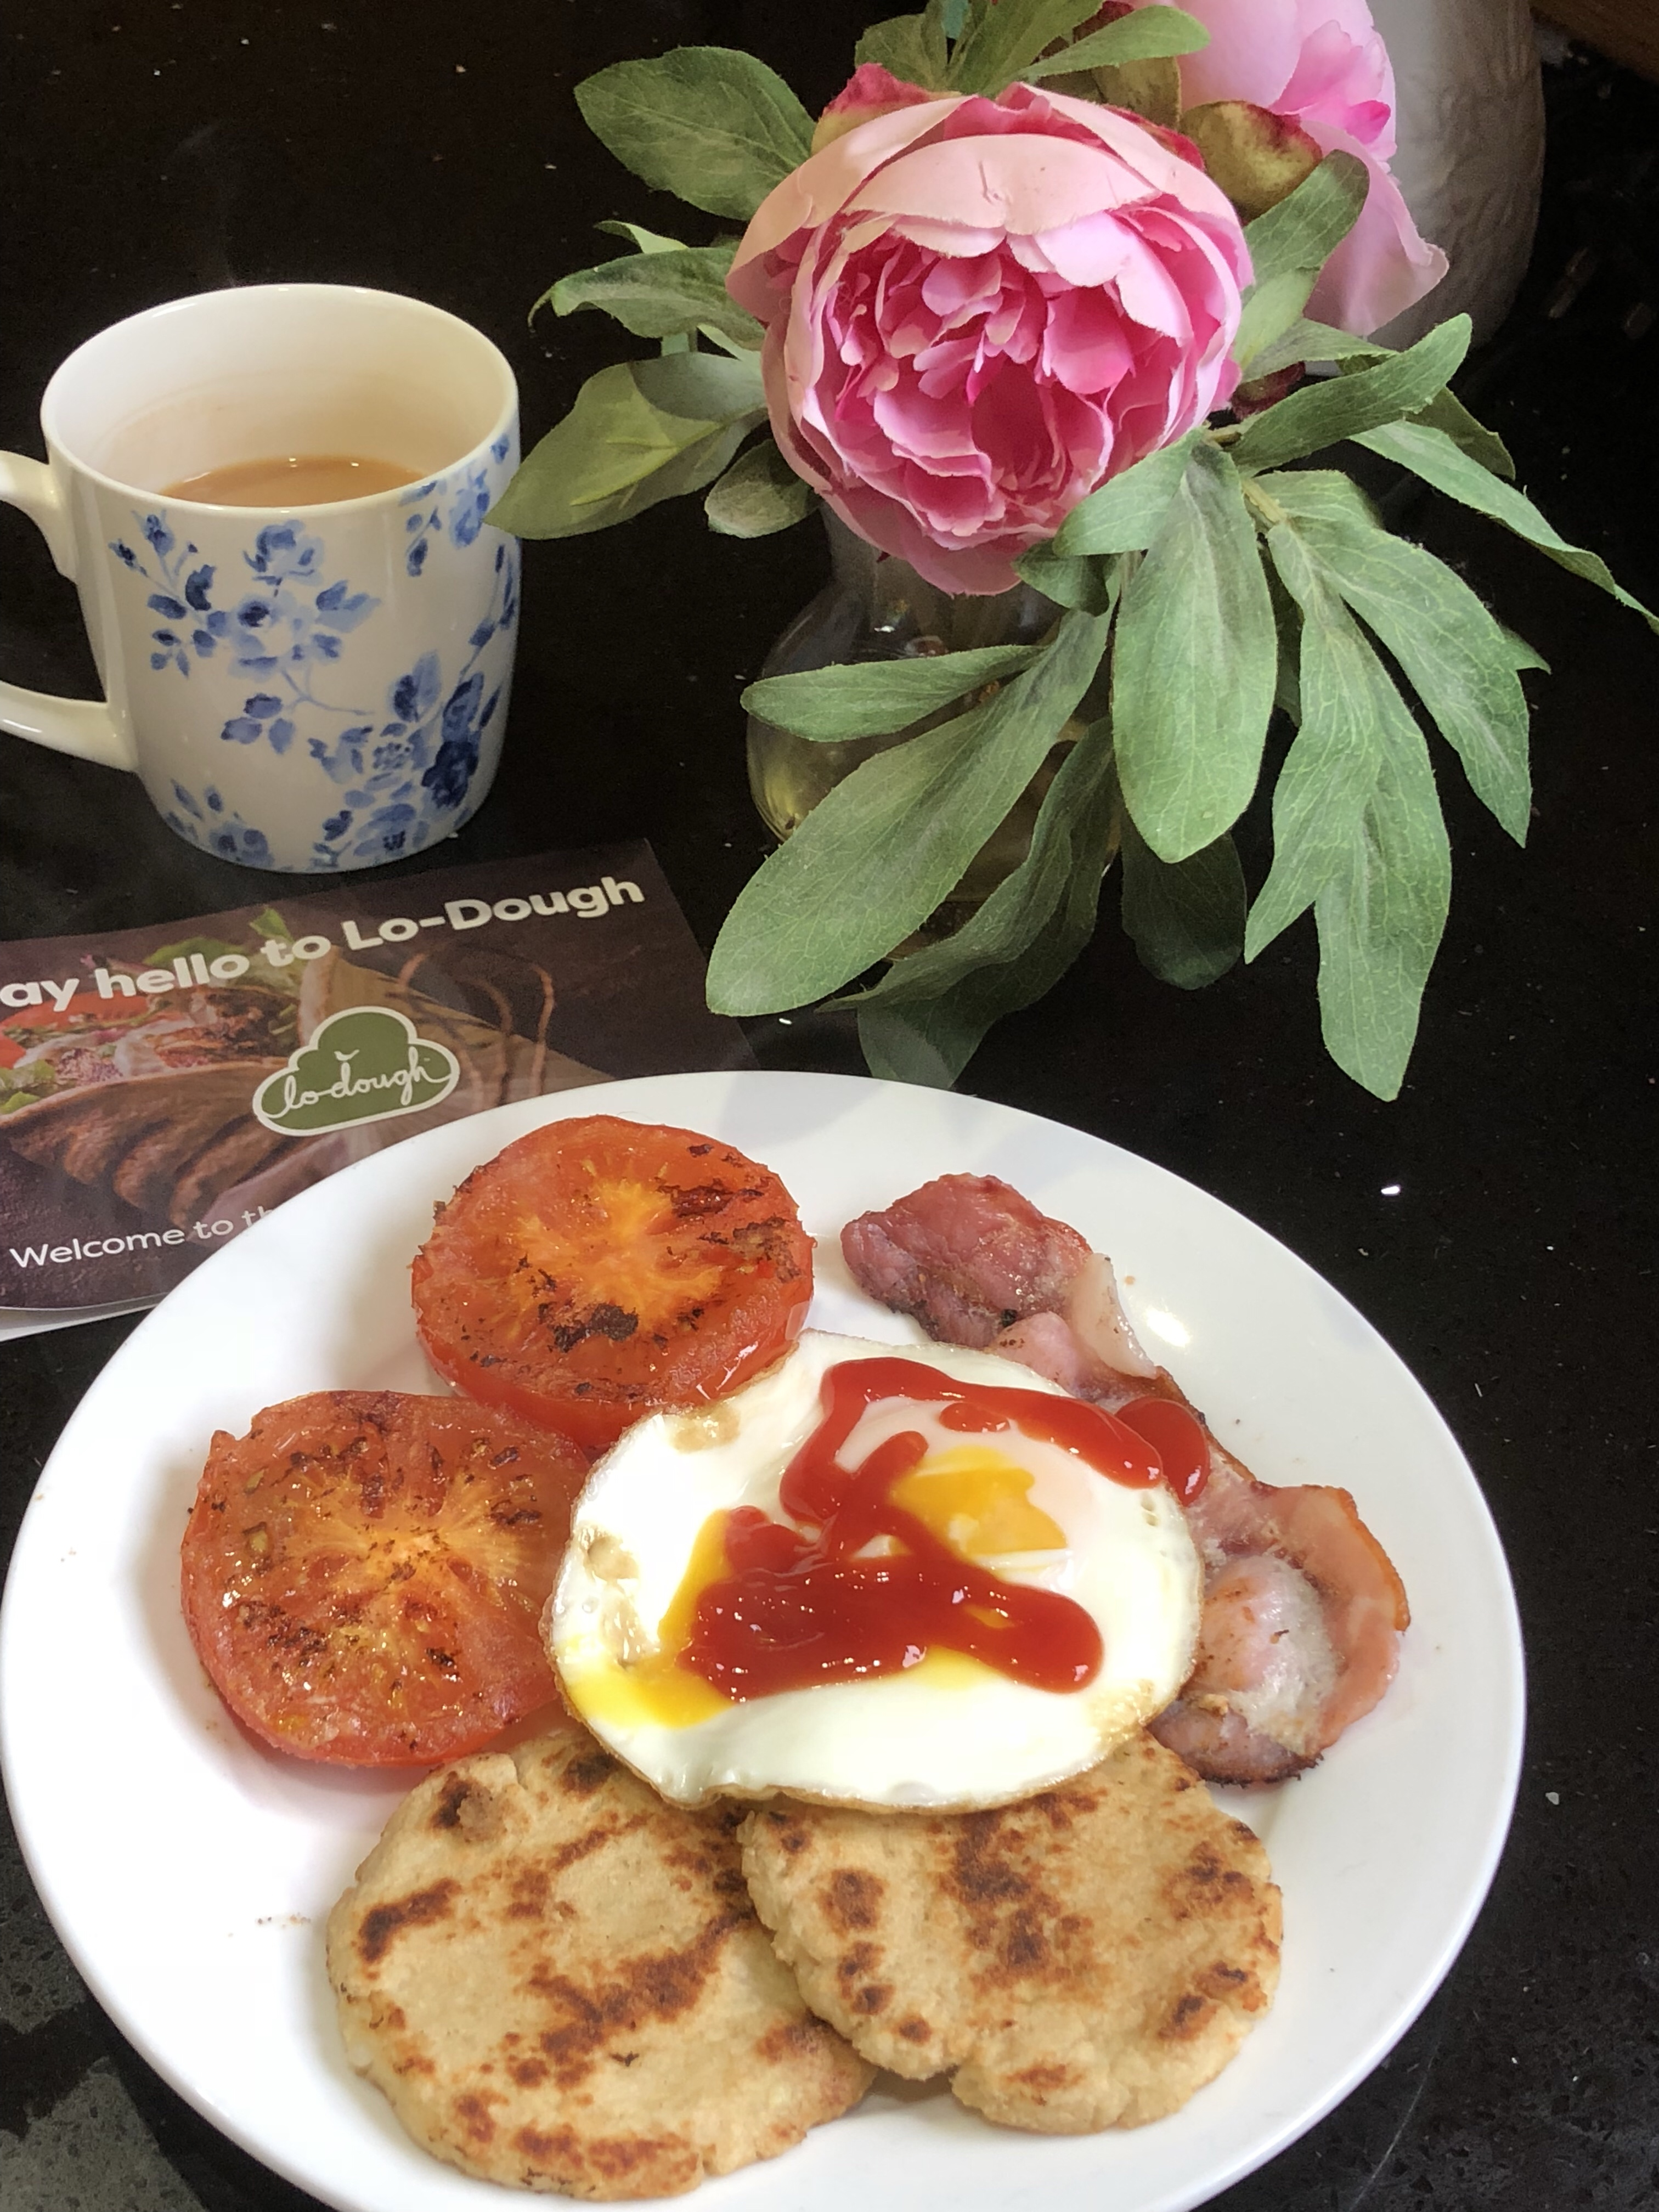 LoDough_Potato_cakes_breakfast